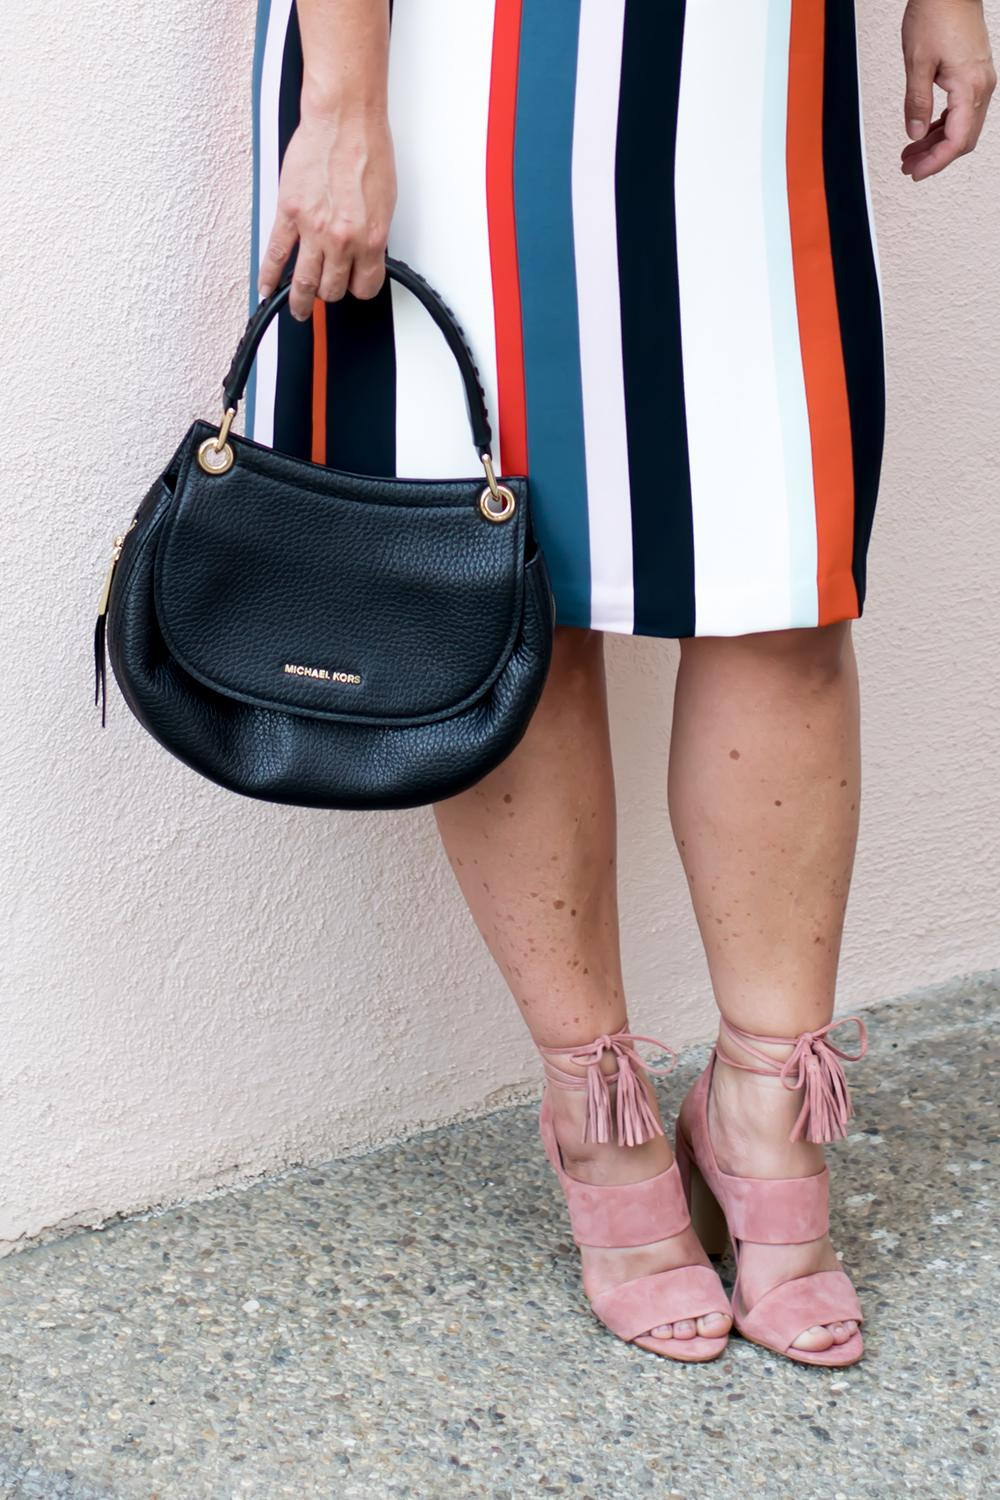 Striped-Tank-Shift-Dress-Madewell-Blush-Sandals-Ann-Taylor-Semi-Annual-Sale-Barefoot-in-LA-Fashion-Blog-Style-Ideas-Outfits_1432